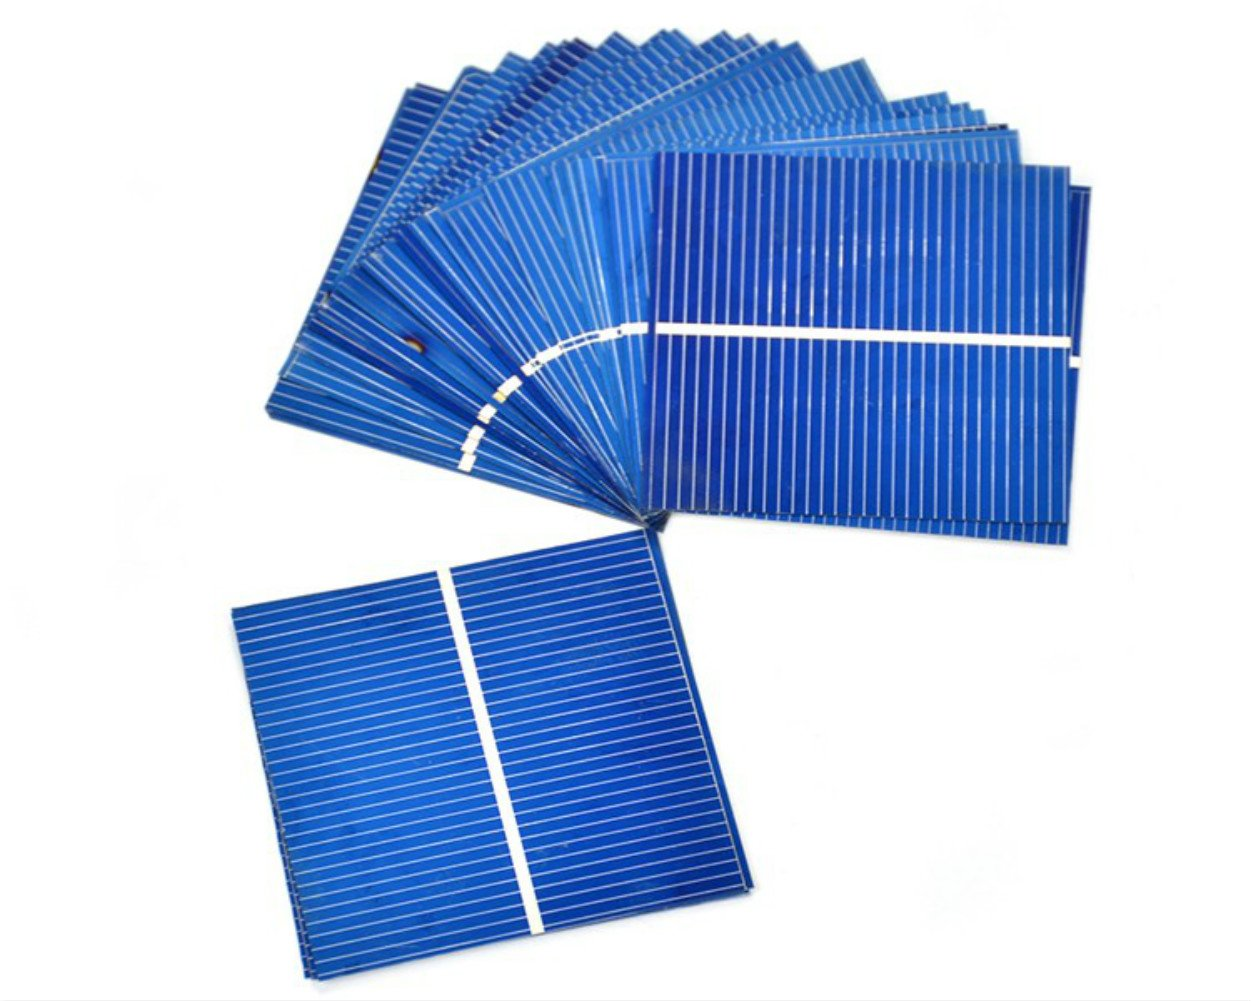 Aoshike 50pcs Mini 52x52MM Micro solar panel for DIY Polycrystalline solar cell DIY cell phone charging Sun Power battery charger